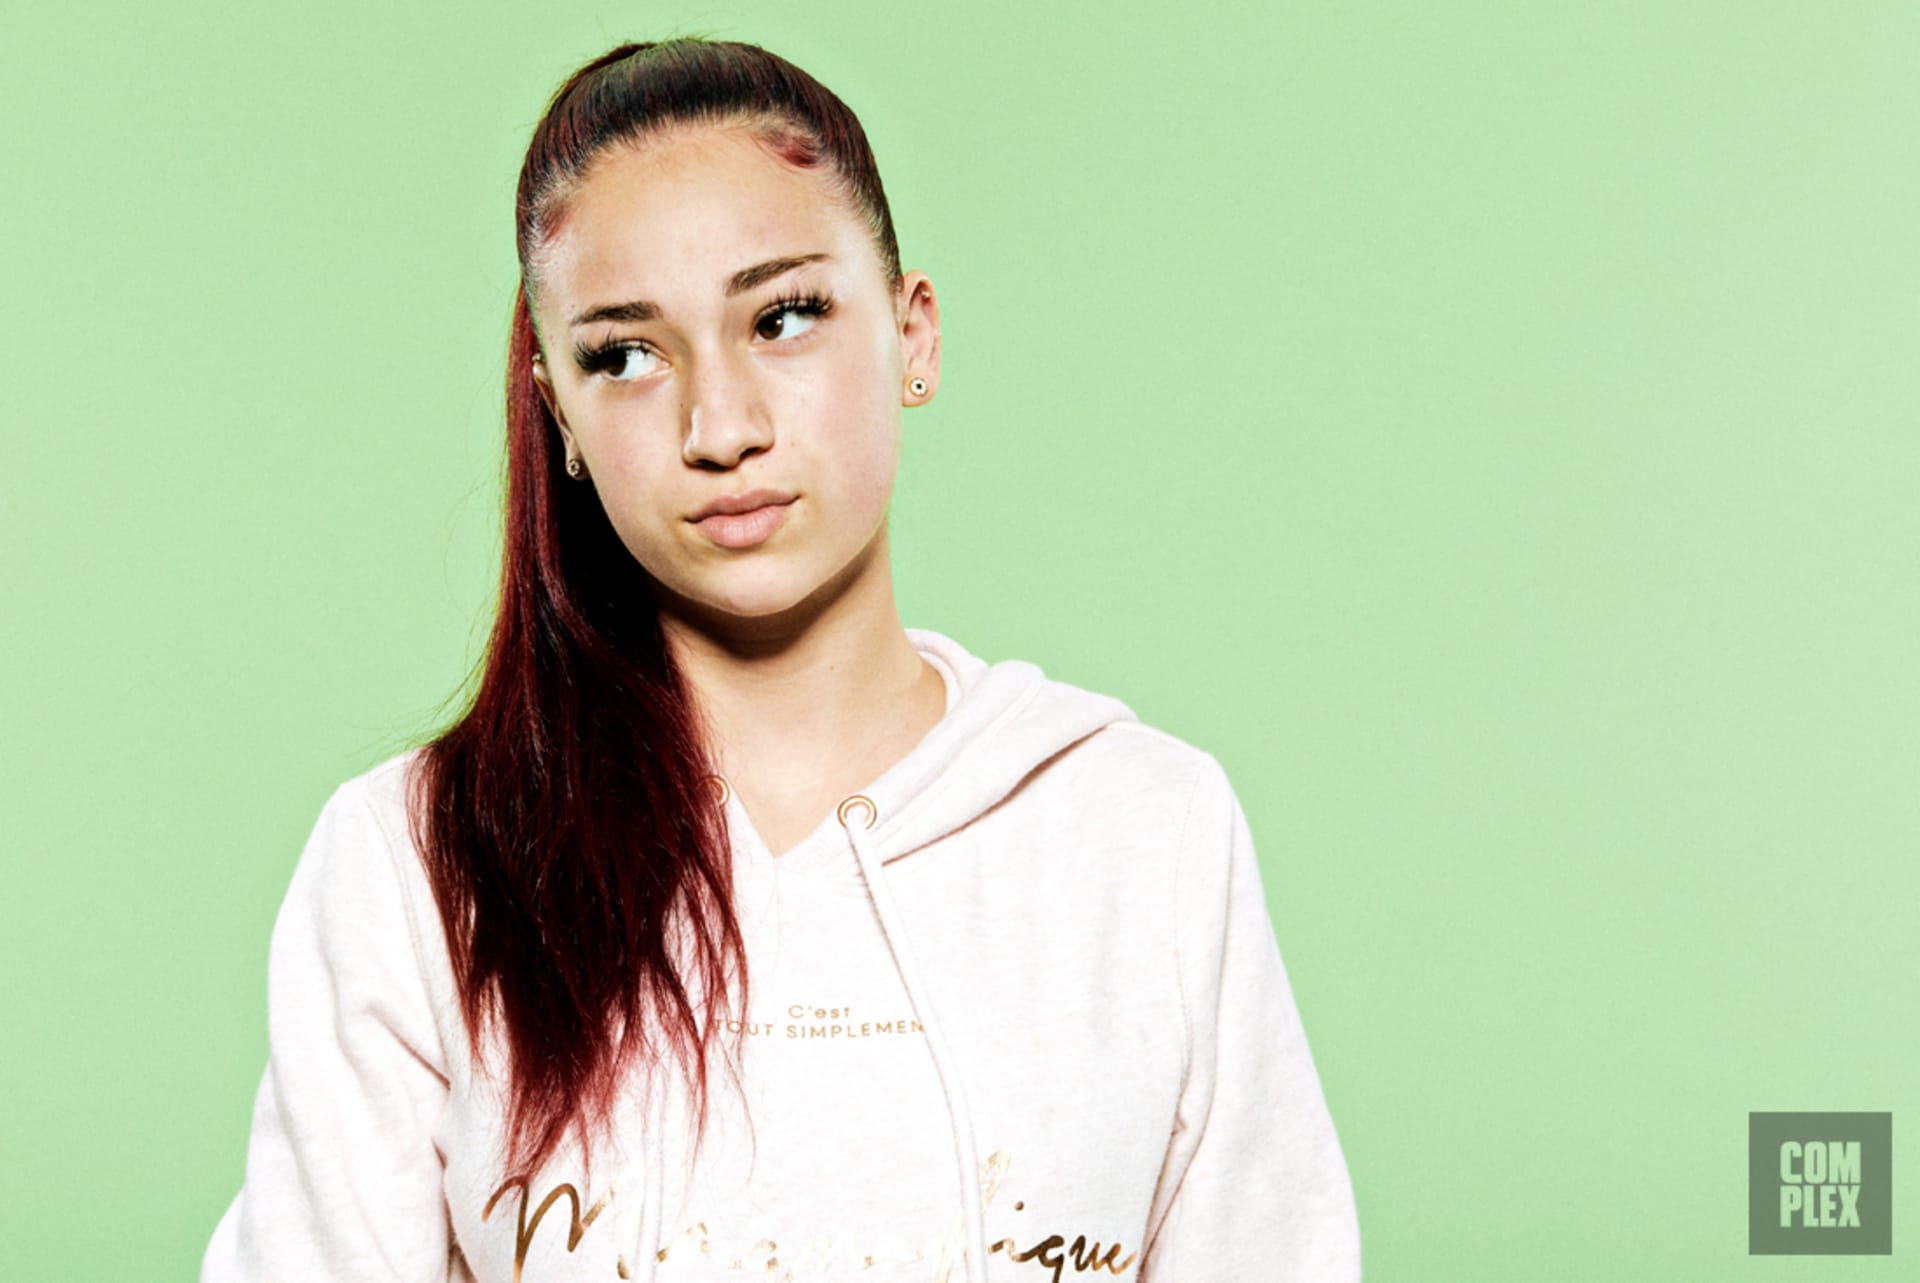 cfa42197c44 Now Known As Bhad Bhabie